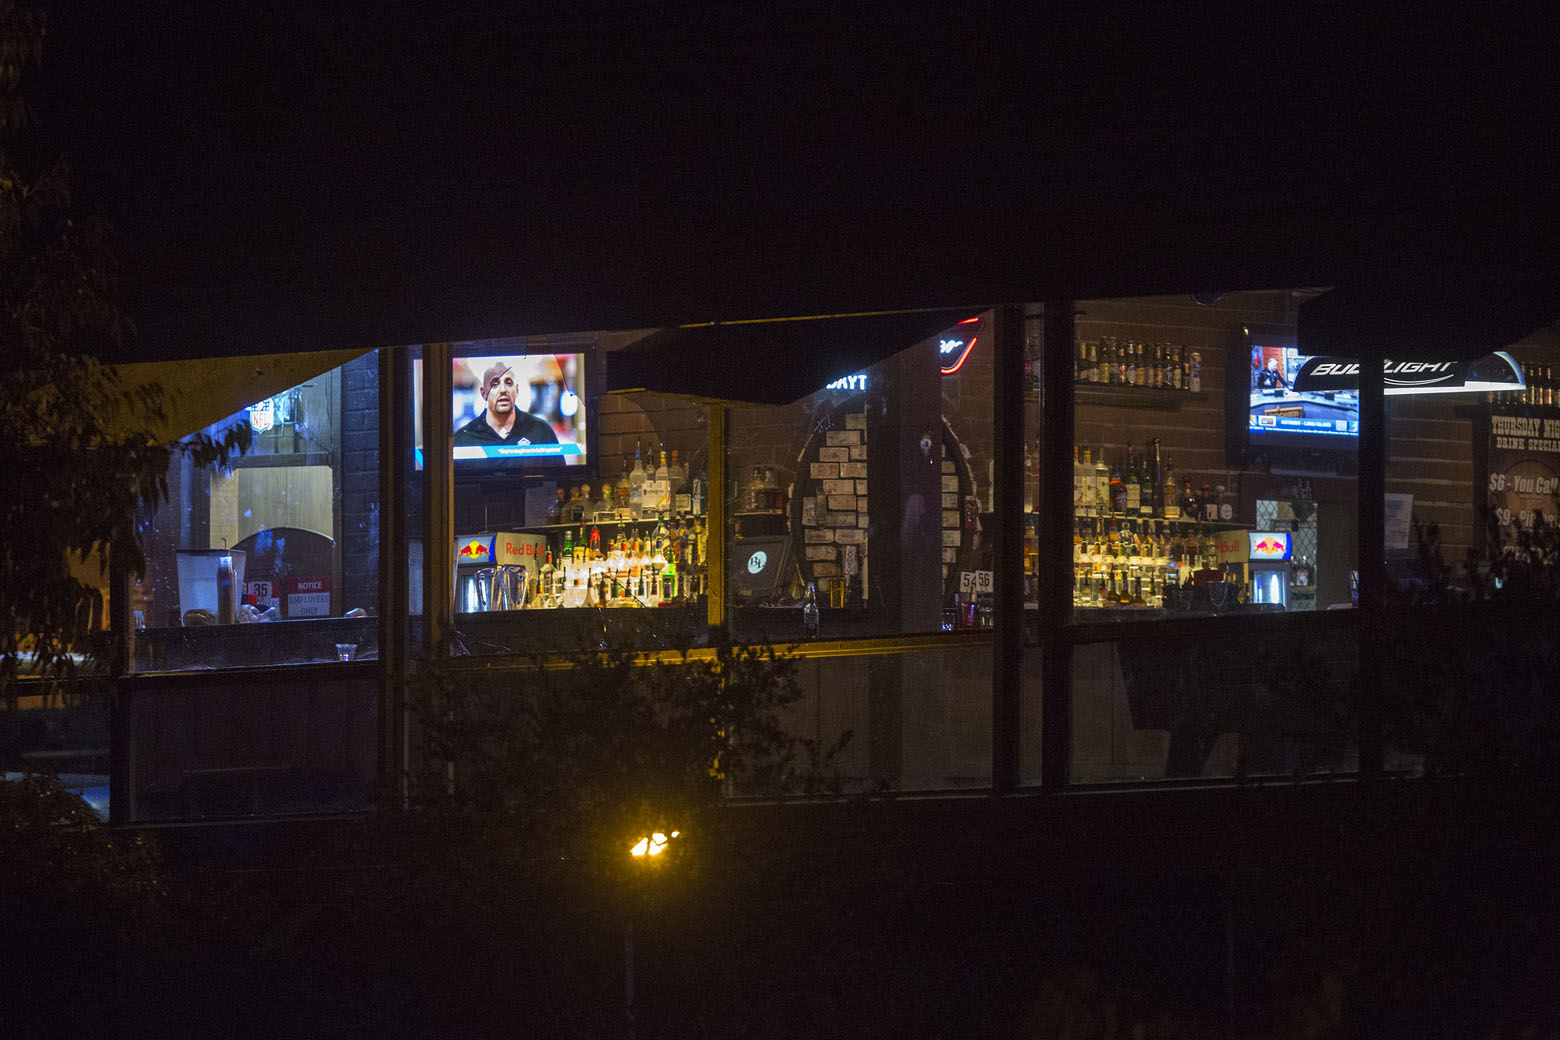 THOUSAND OAKS, CA - NOVEMBER 08:  Light shines from inside The Borderline Bar and Grill, the scene of a mass shooting on November 8, 2018 in Thousand Oaks, California. At least twelve  people have died, including a Ventura County Sheriffs Department sergeant, plus the gunman.  (Photo by David McNew/Getty Images)